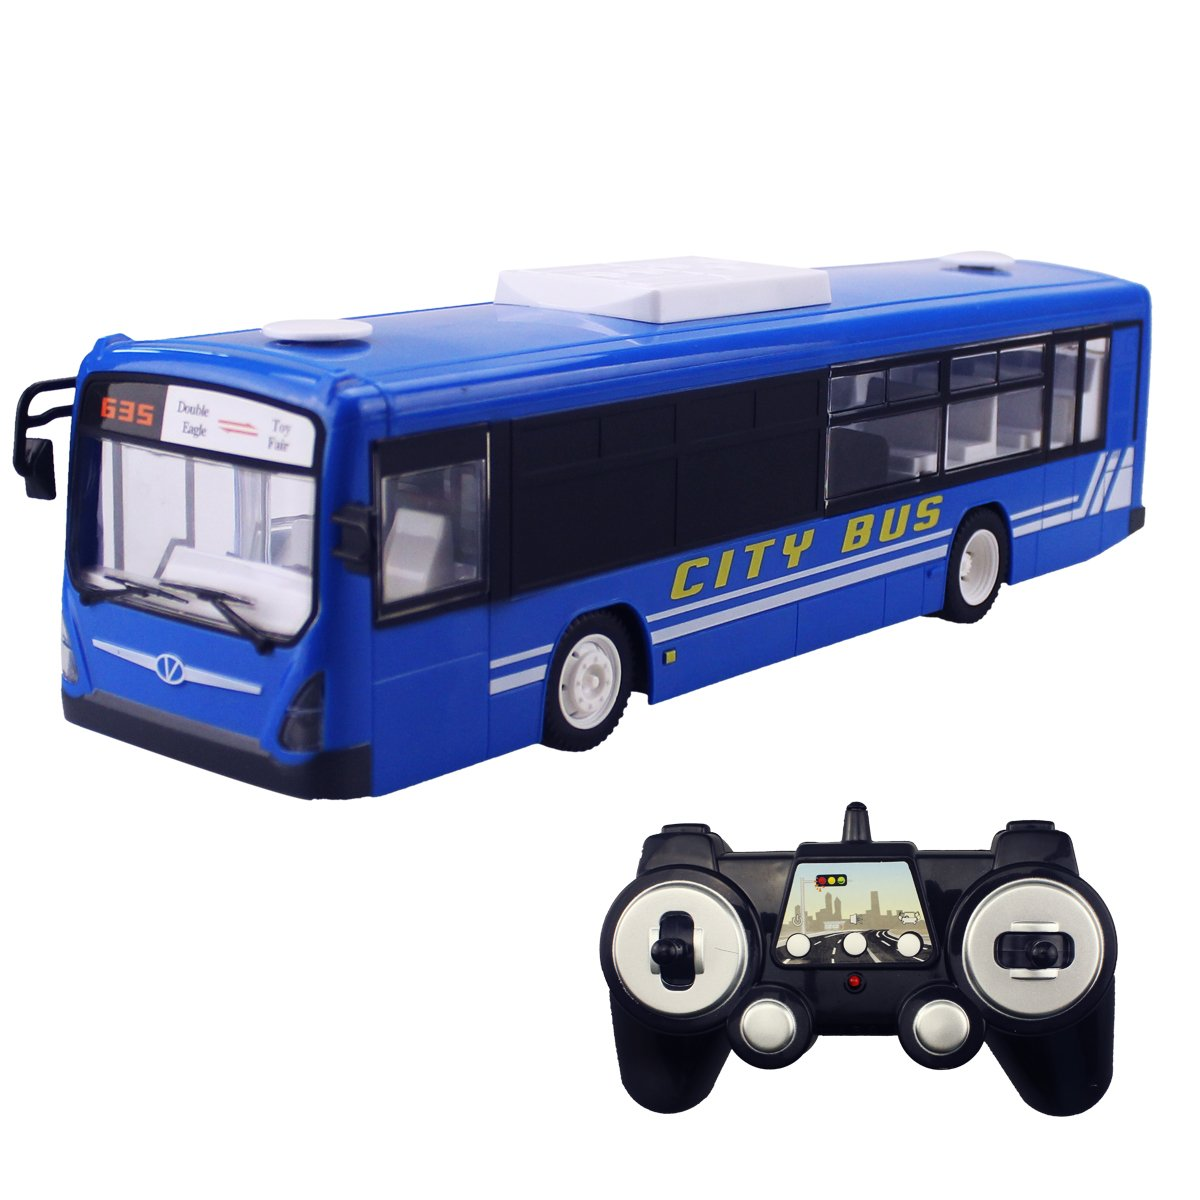 Hugine 2.4G RC Bus With Opening Doors And Realistic Sounds 6 Channel Remote Control City Bus Express Bus School Bus Rechargeable Toy For Kids (Blue)